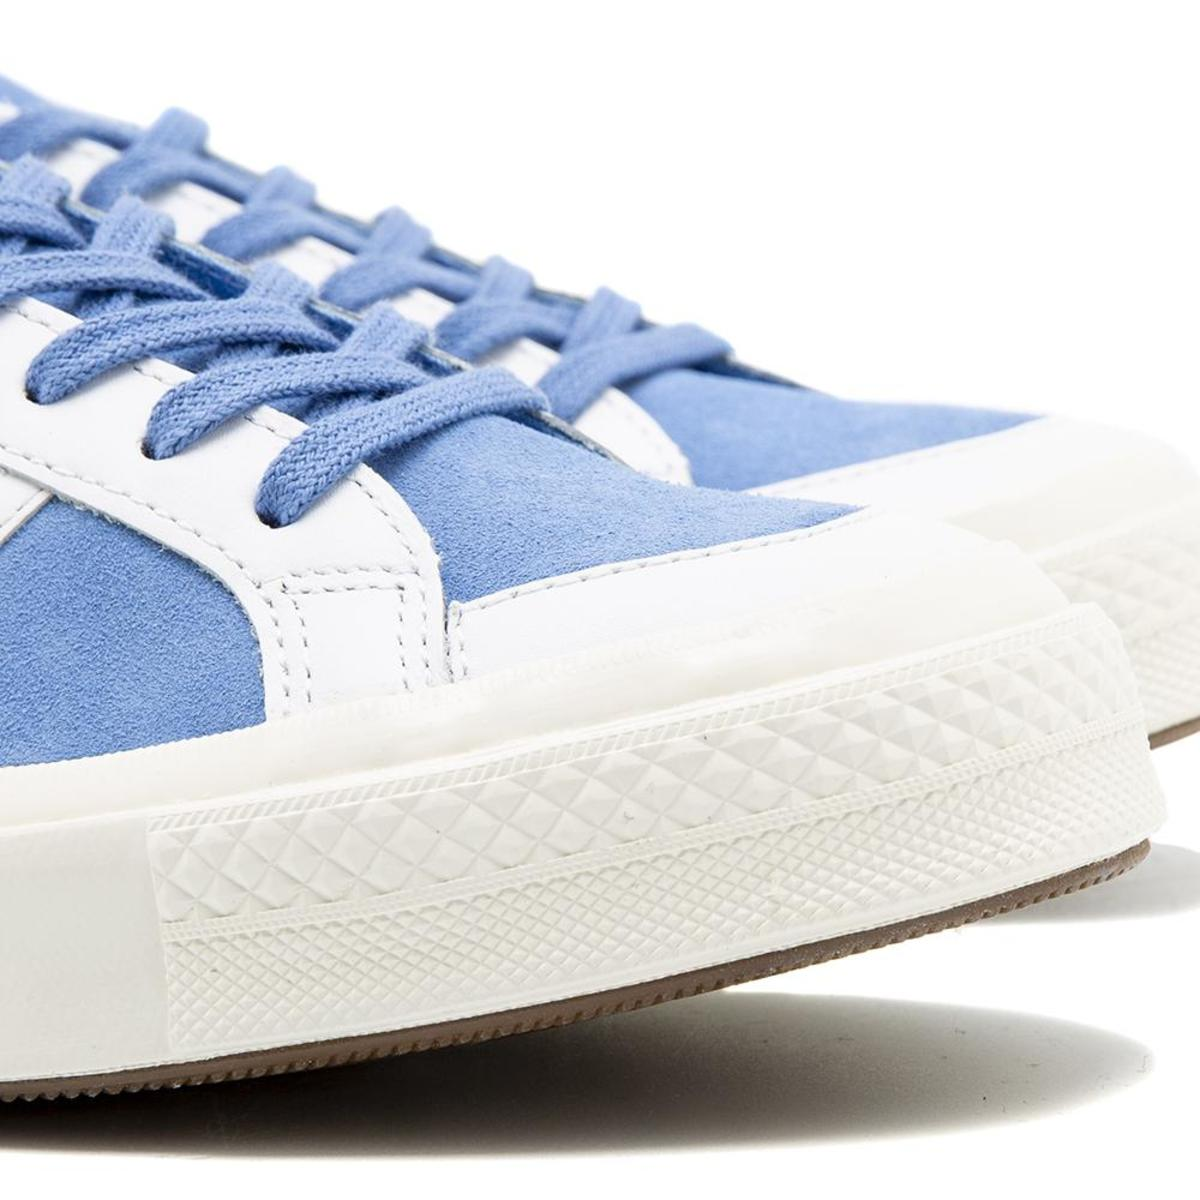 Converse One Star Academy Ivy League Suede sneaker Bright Blue